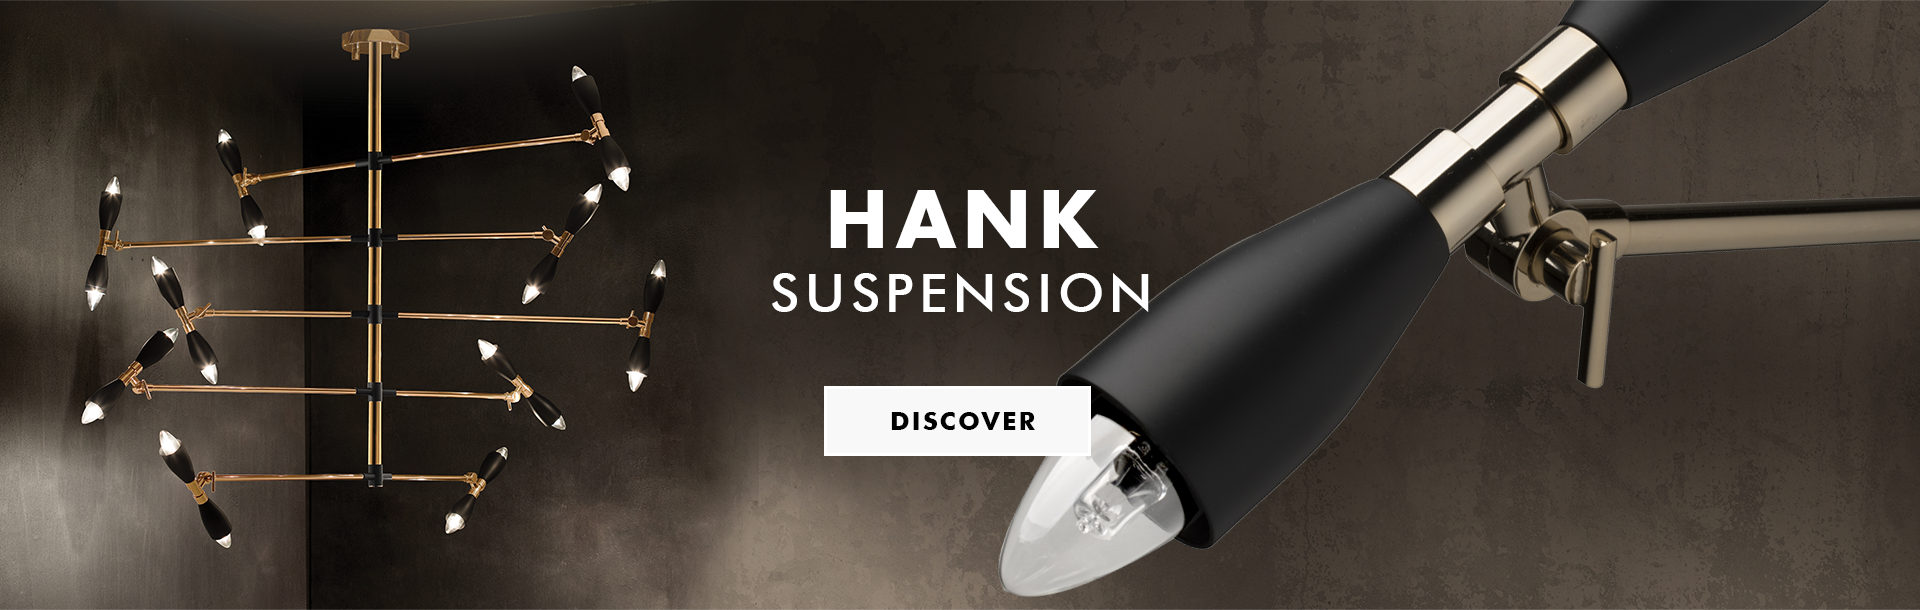 Hank suspension lamp